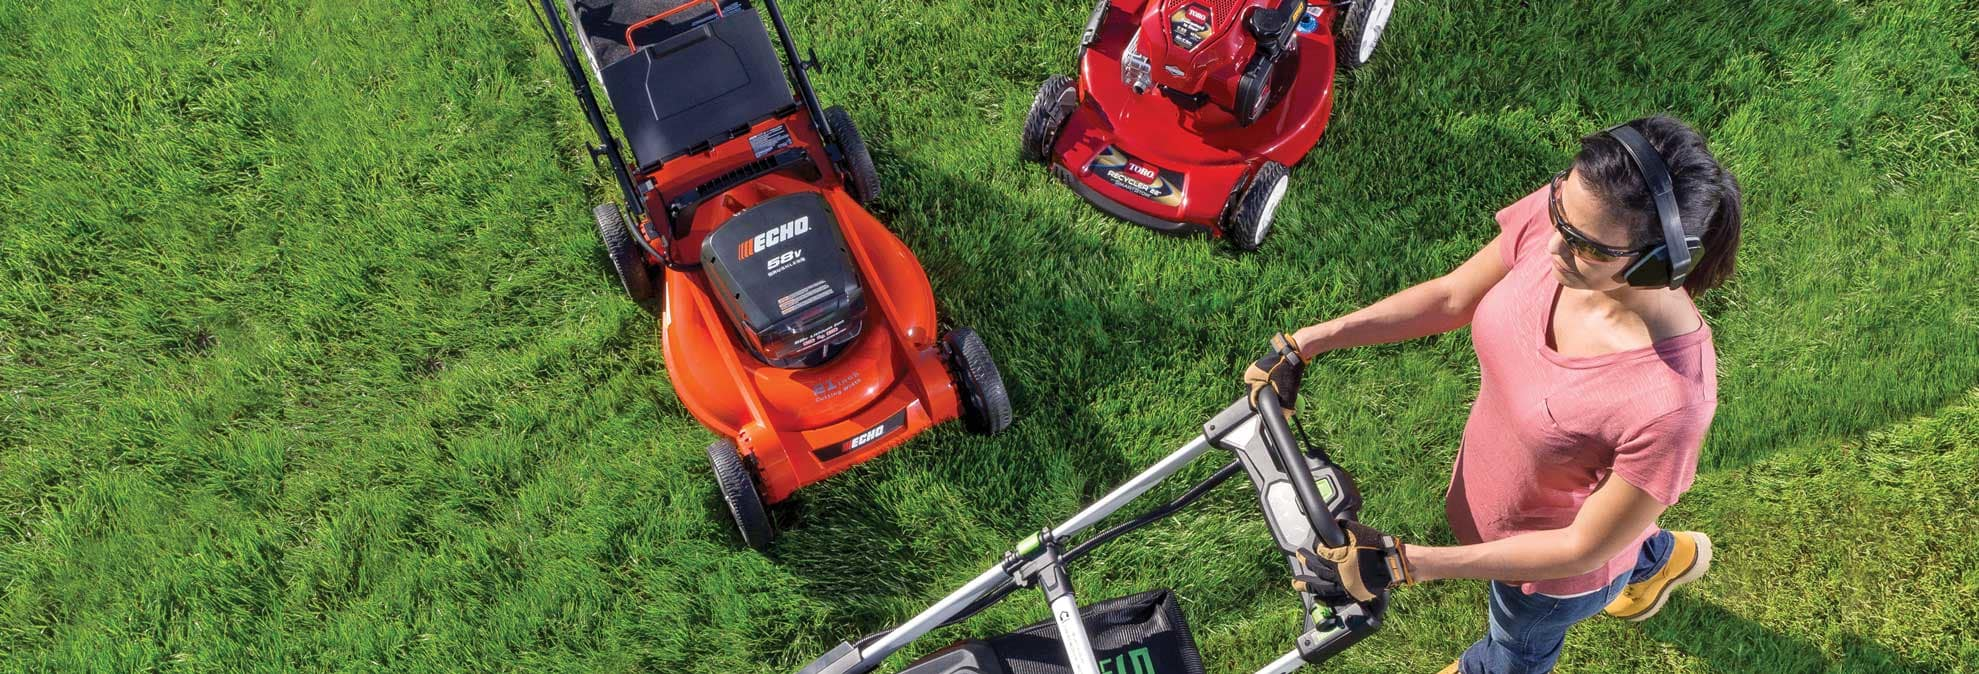 Electric Lawn Mower Sale Electric Lawn Mowers That Rival Gas Models Consumer Reports